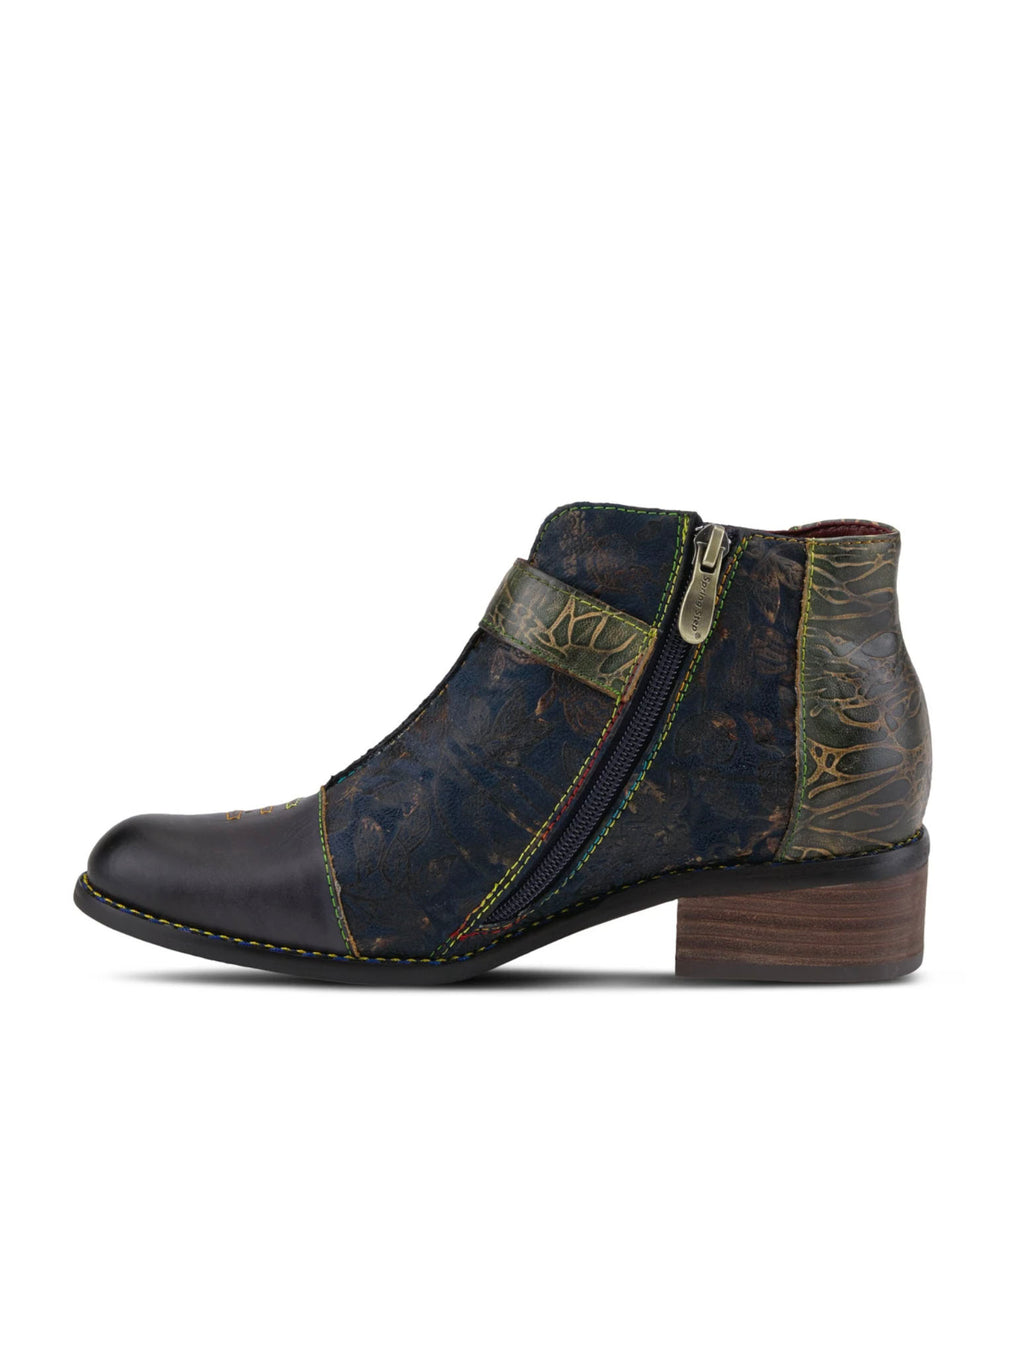 Spring Step L'Artiste Georgiana Bootie in Black Multi